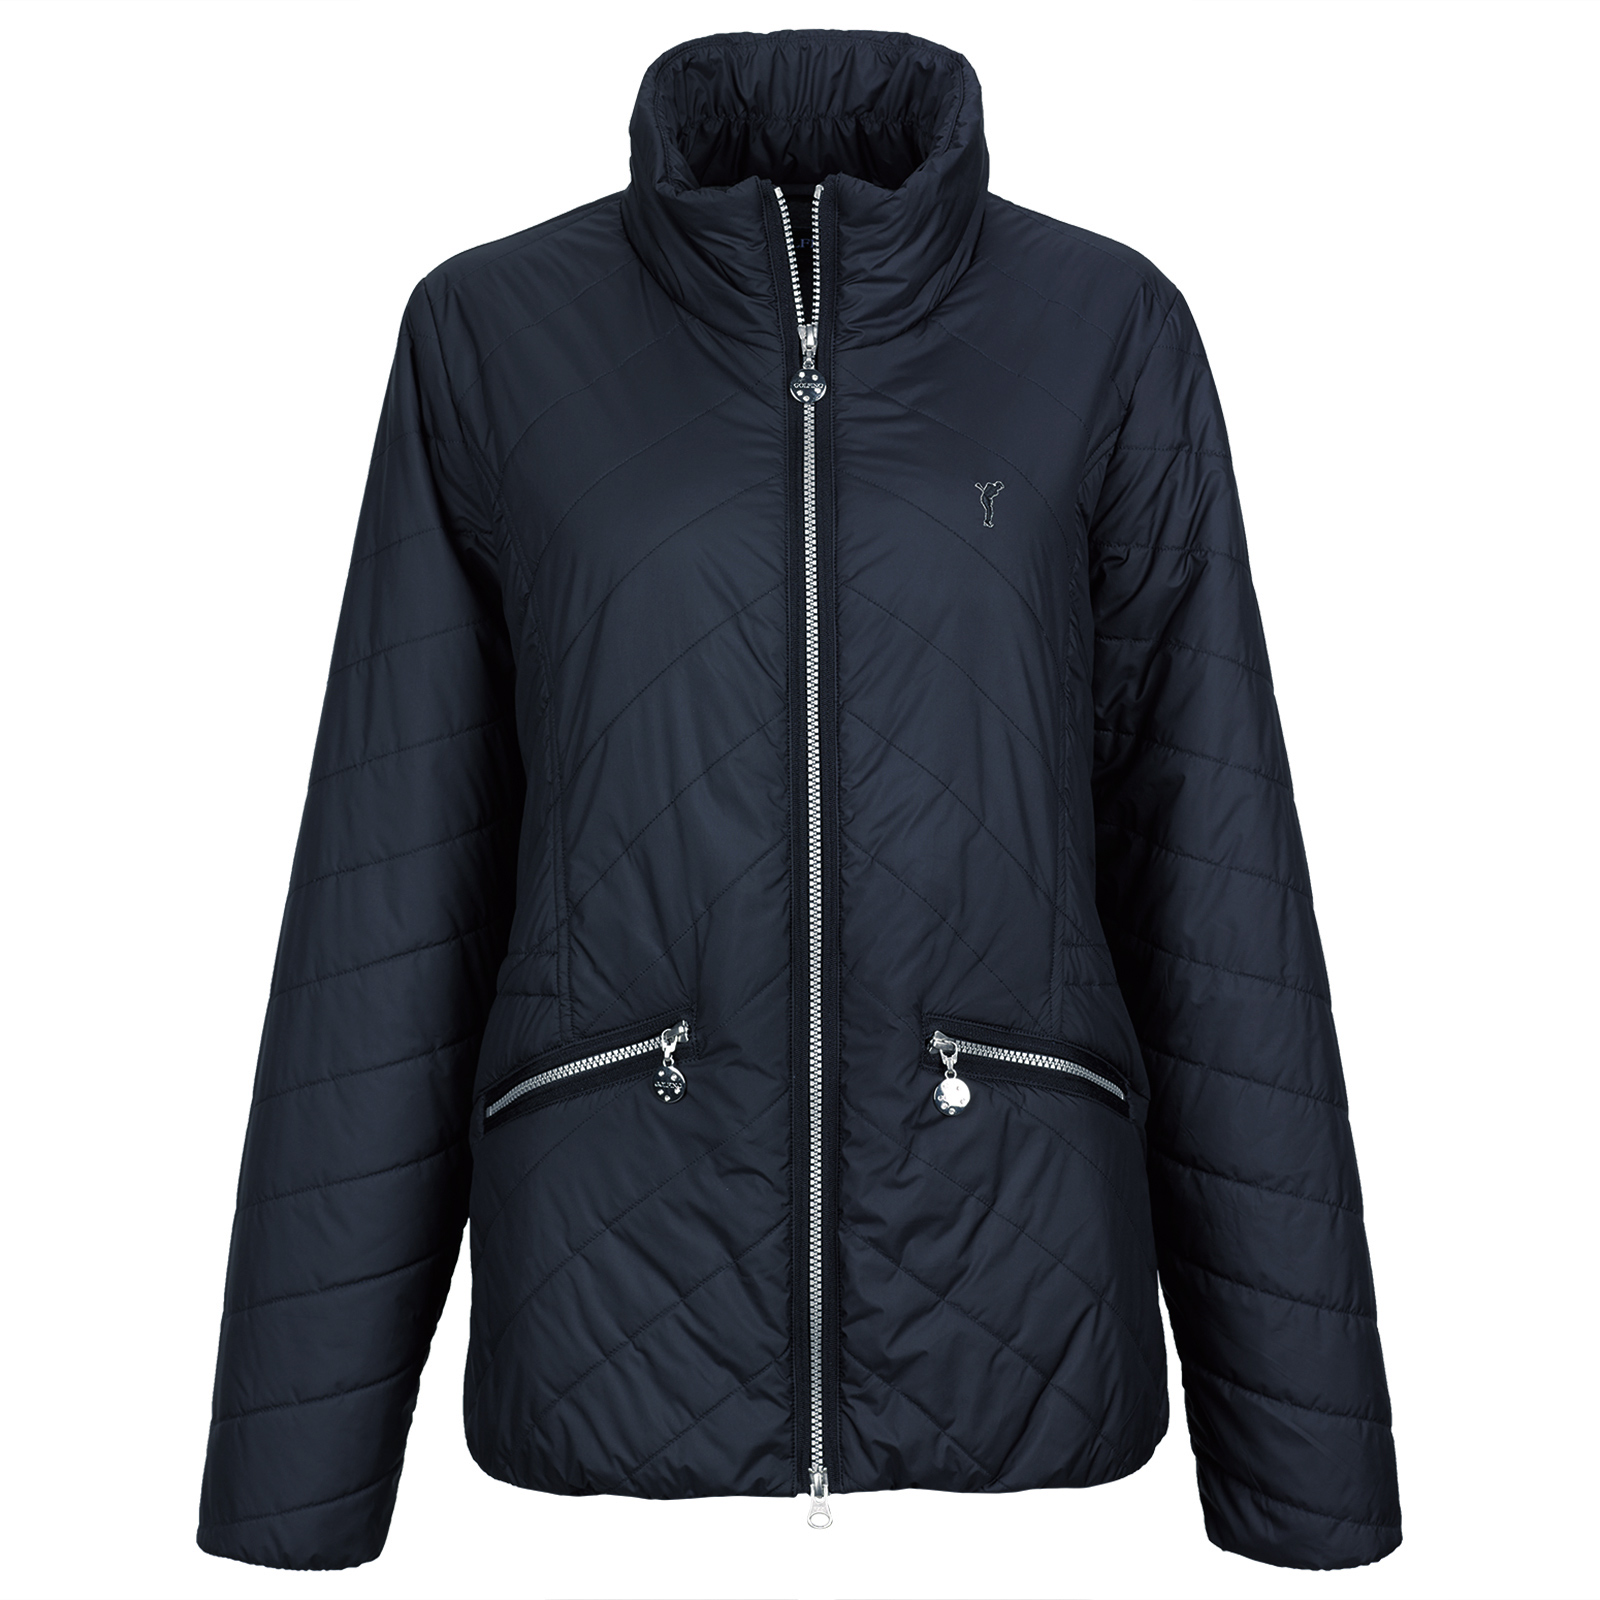 Breathable ladies' padded functional jacket with Wind Protection